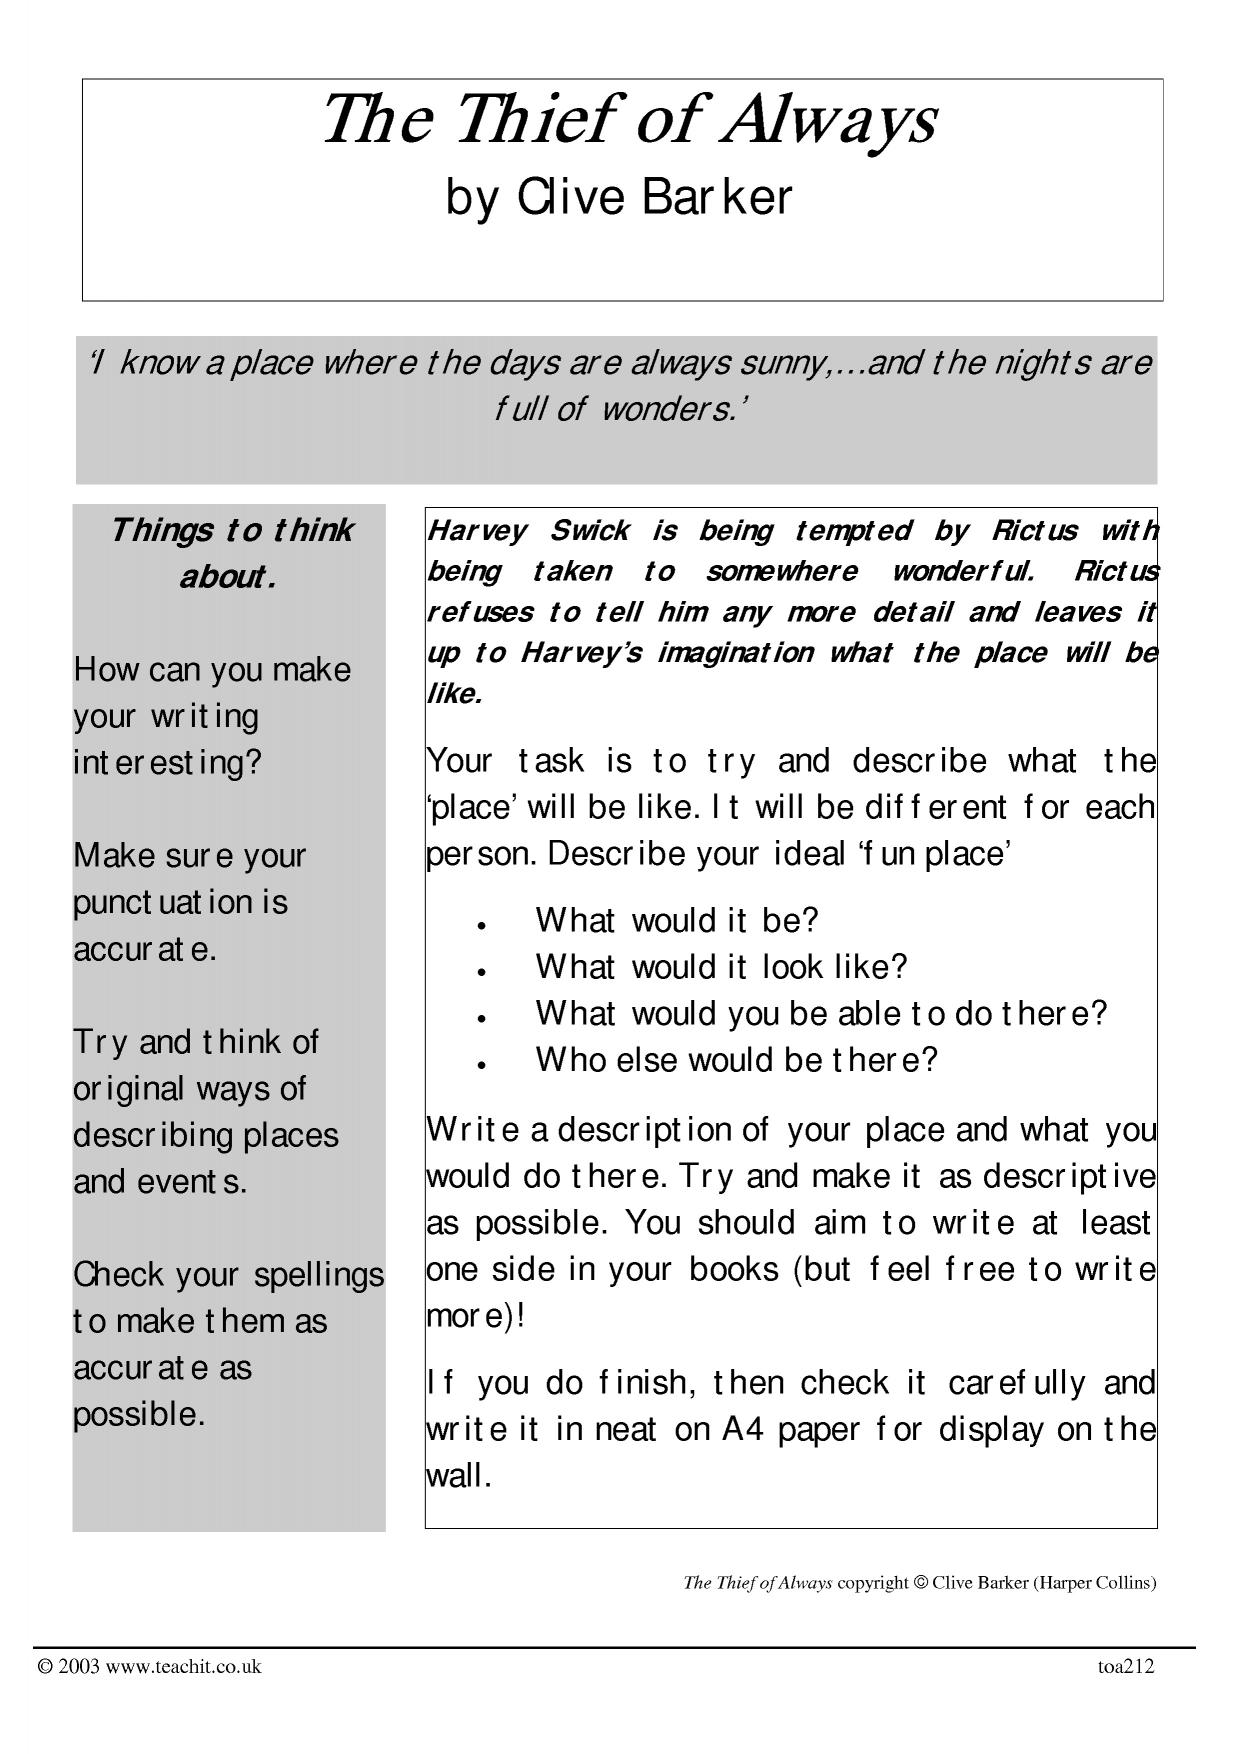 average writing speed essay 21 clever writing prompts that will unleash your students' creativity  slow things down or speed 'em up  find many more persuasive writing prompts here.